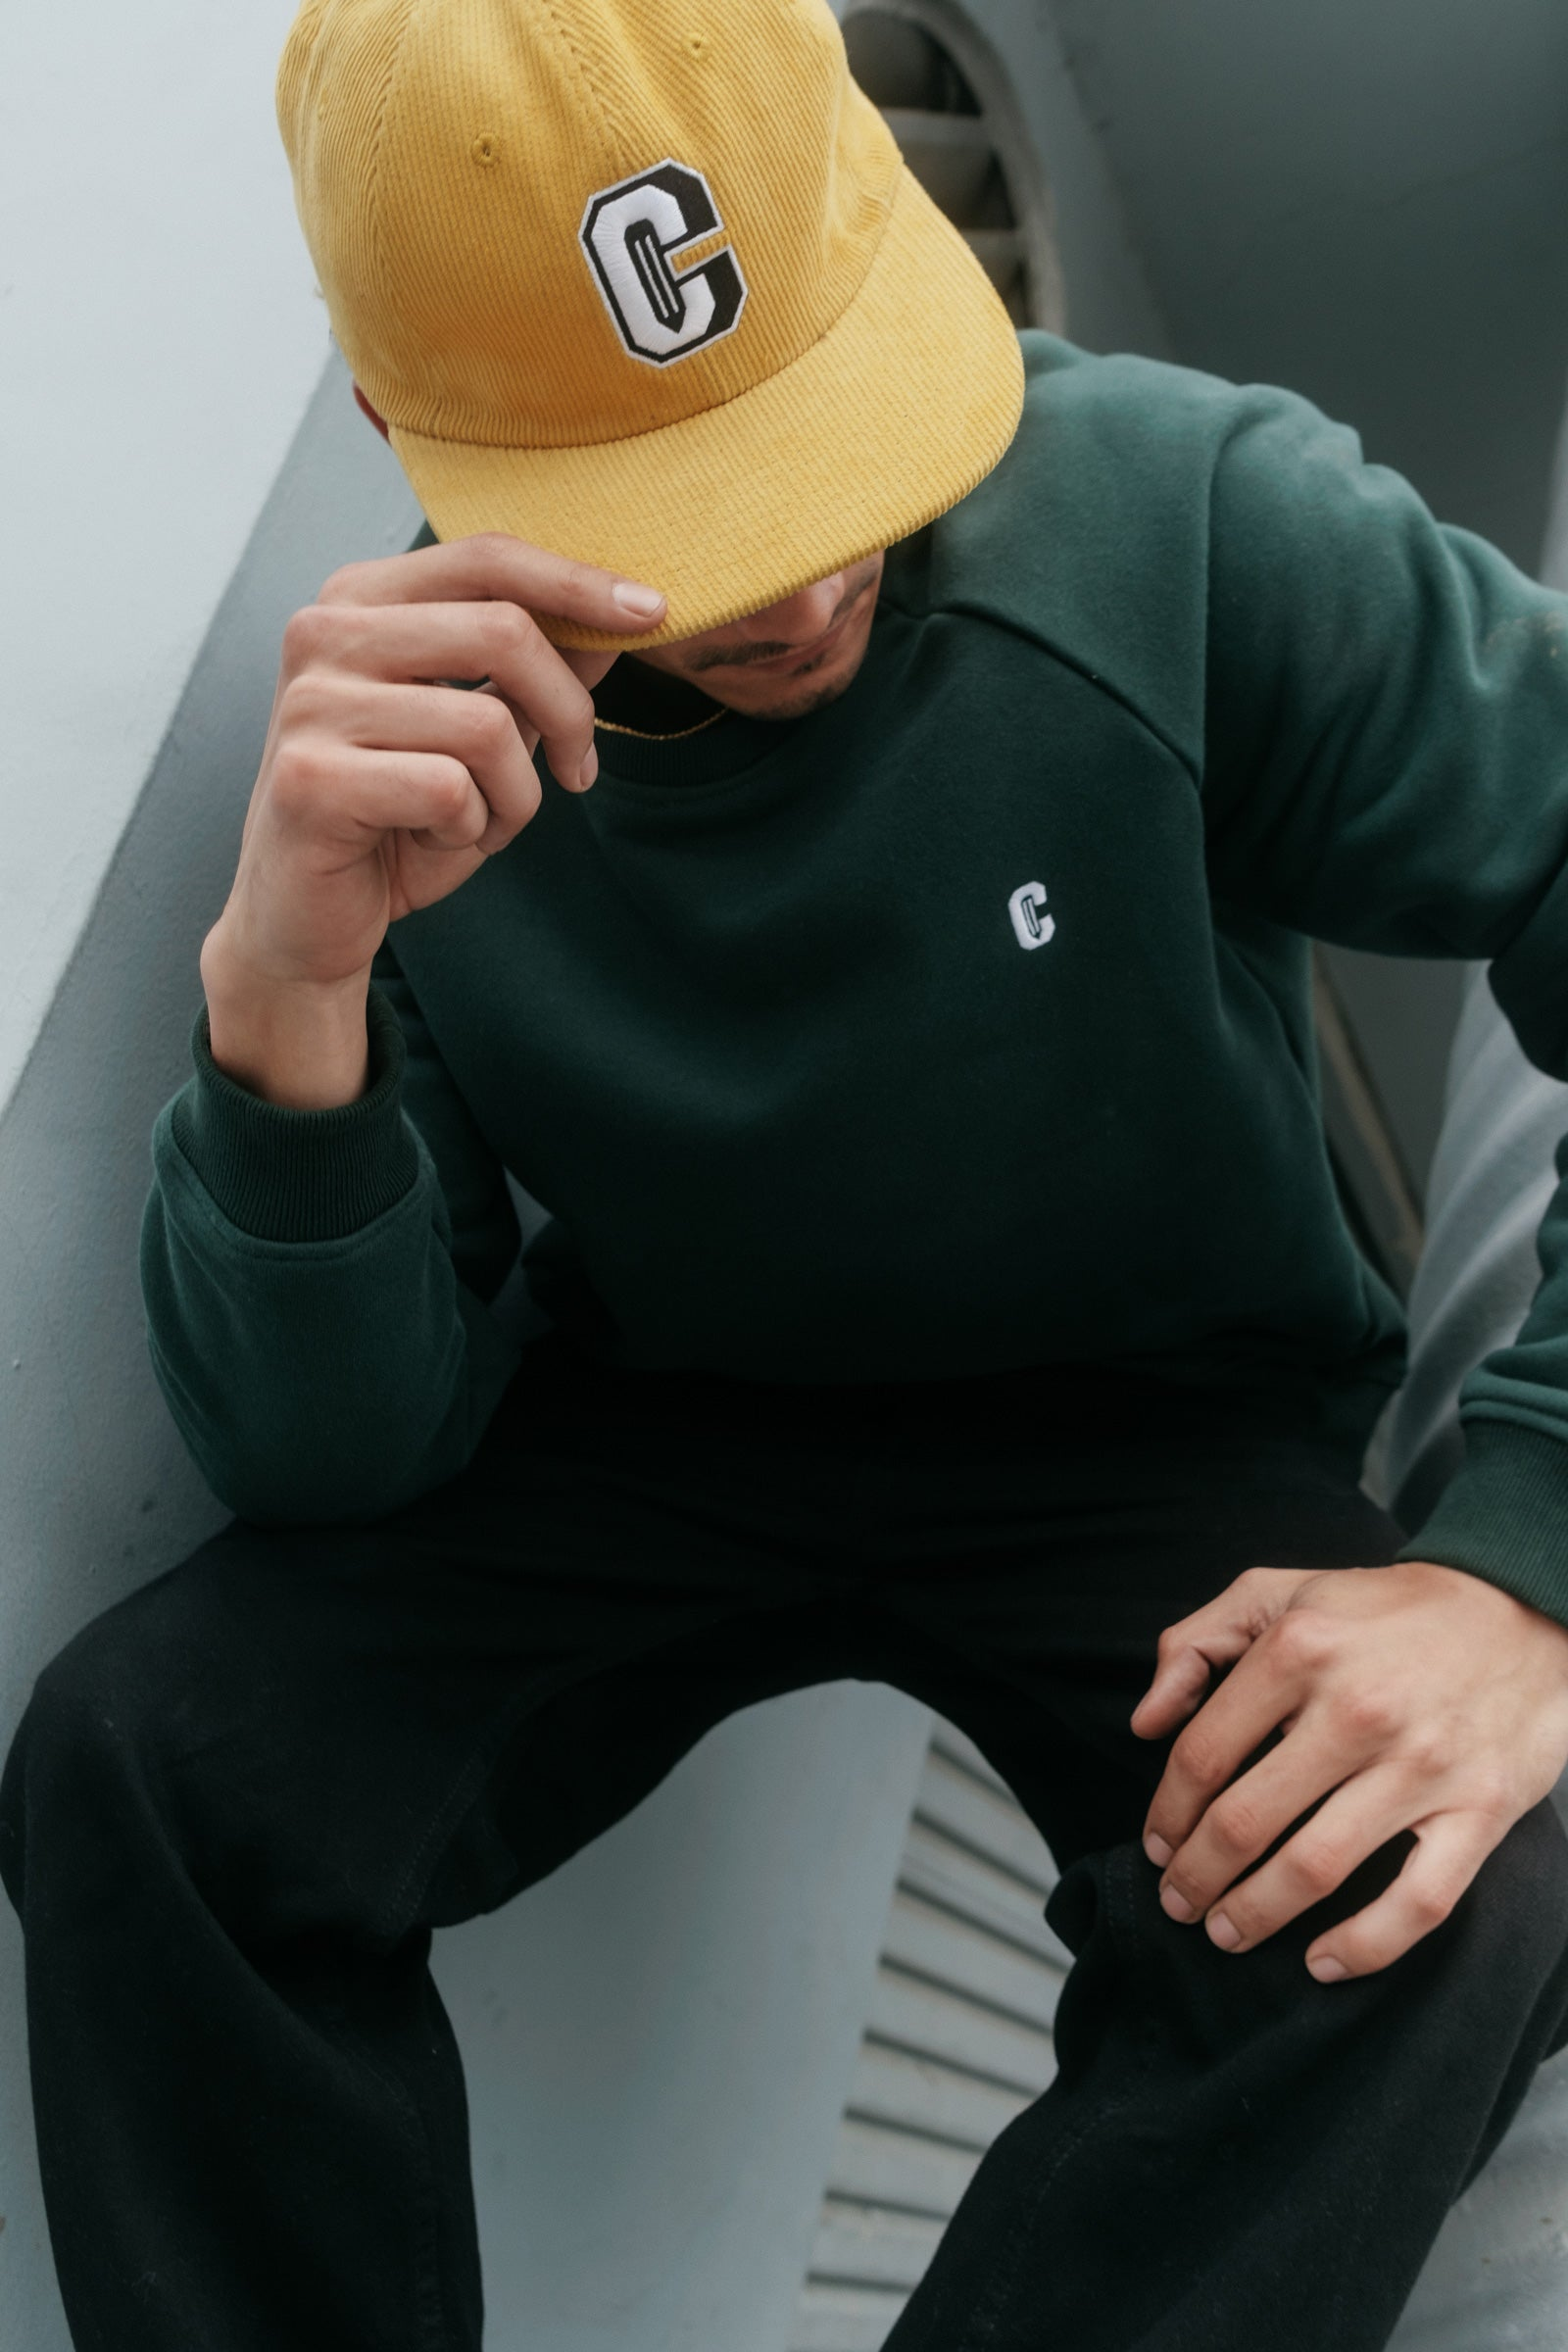 Model wearing the Varsity C Corduroy Cap in yellow and Icon Crewneck Sweatshirt in forest green and sitting at the corner of a building.